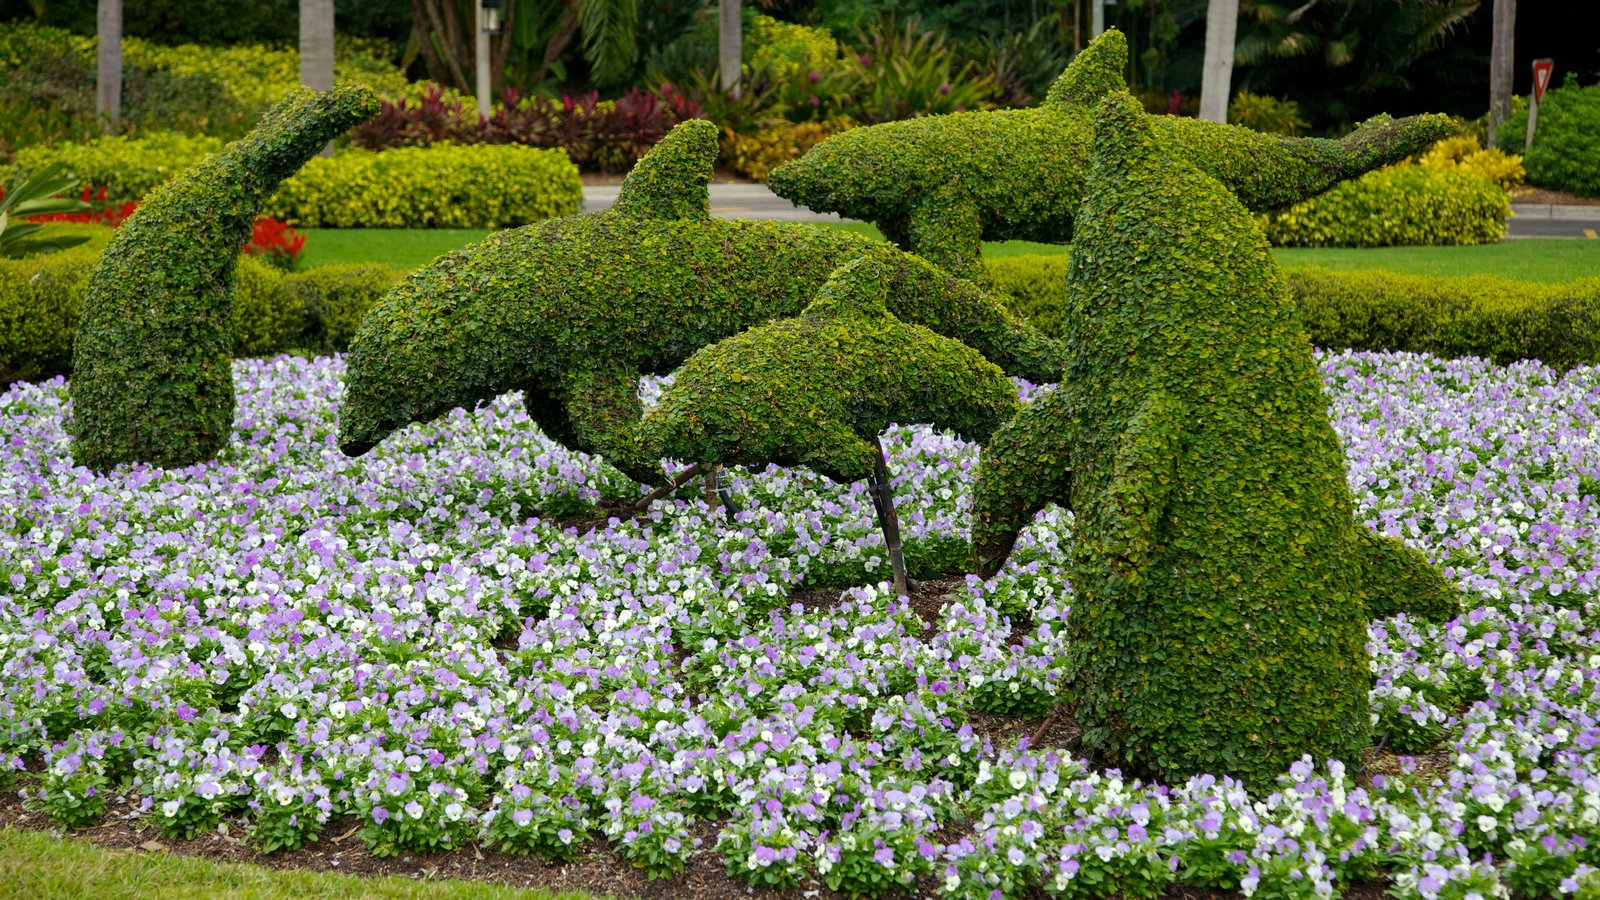 SeaWorld Orlando Showing Outdoor Art, A Garden And Flowers